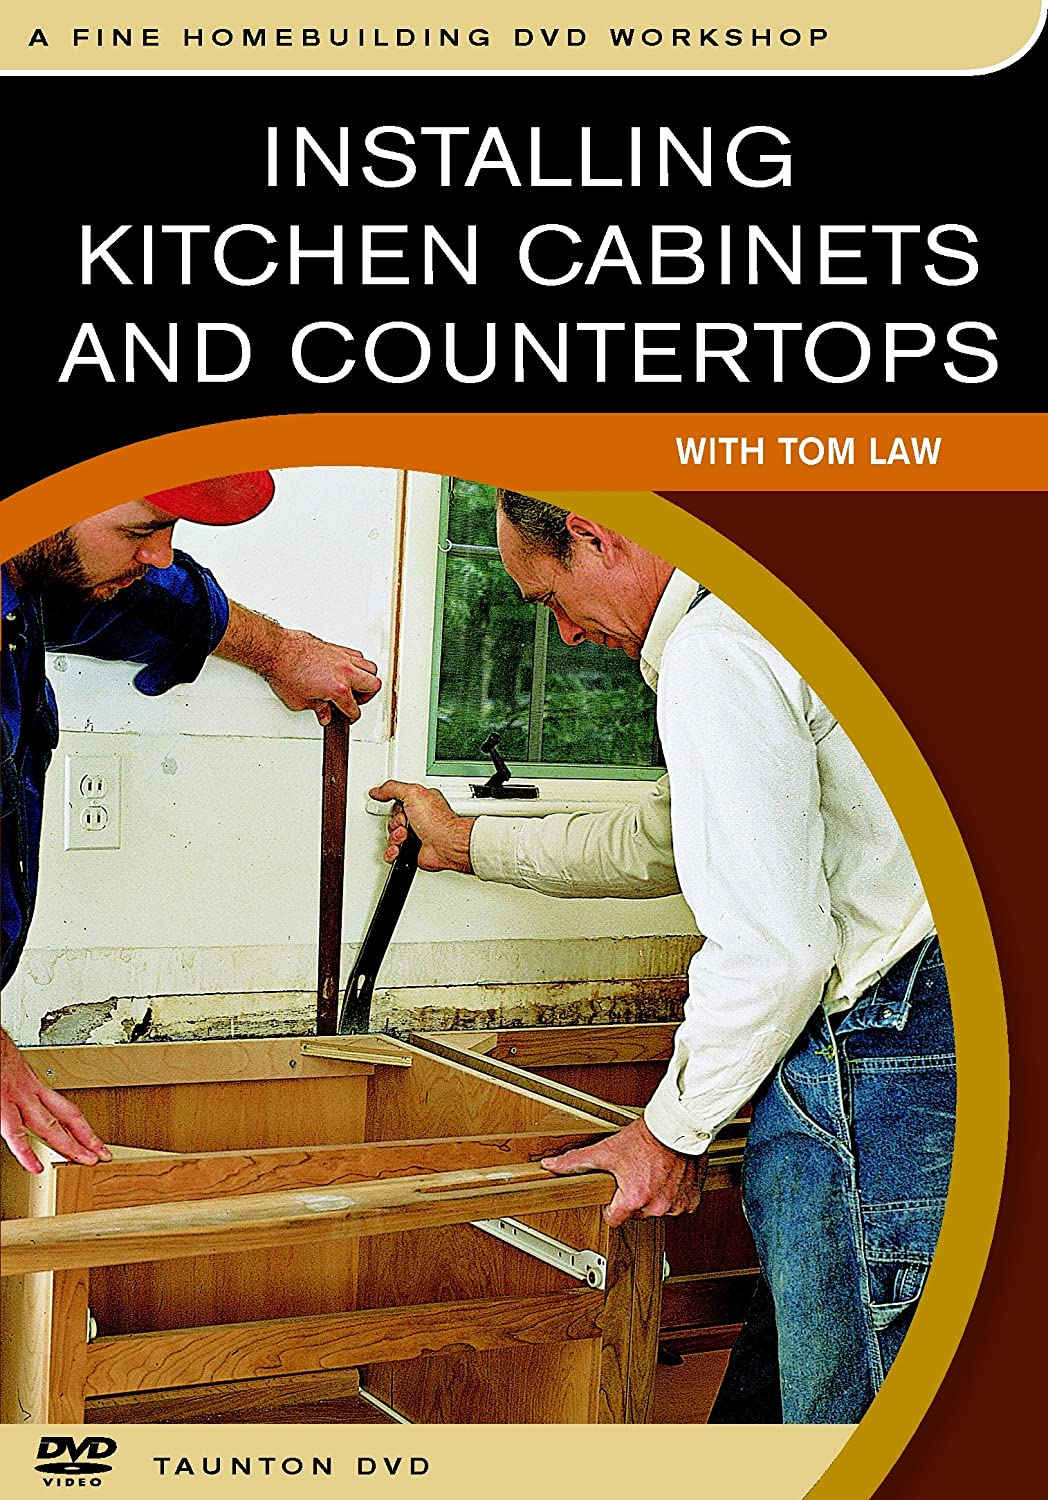 Installing kitchen cabinets and countertops with tom law - Amazon Com Installing Kitchen Cabinets And Countertops With Tom Law Tom Law Movies Tv